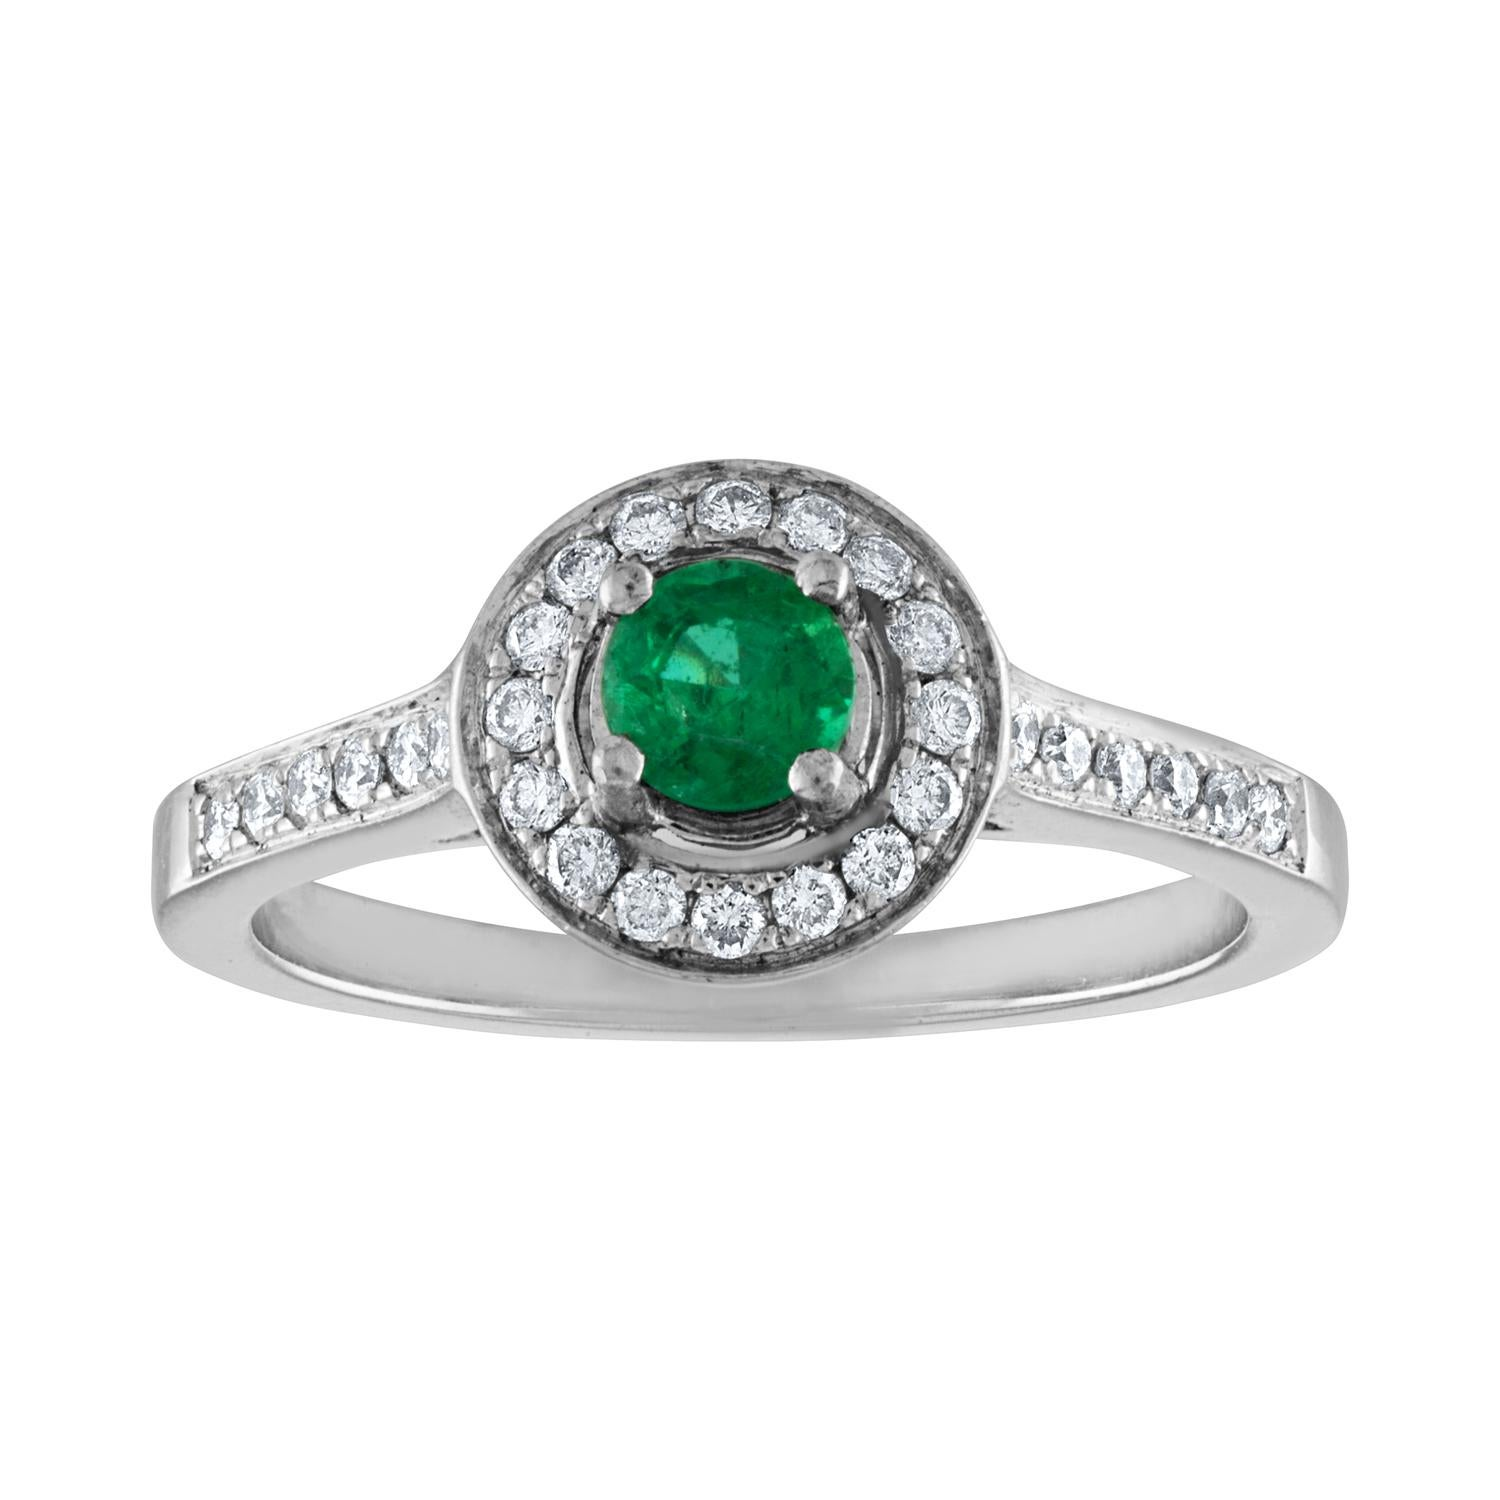 0.30 Carat Emerald Diamond Gold Ring